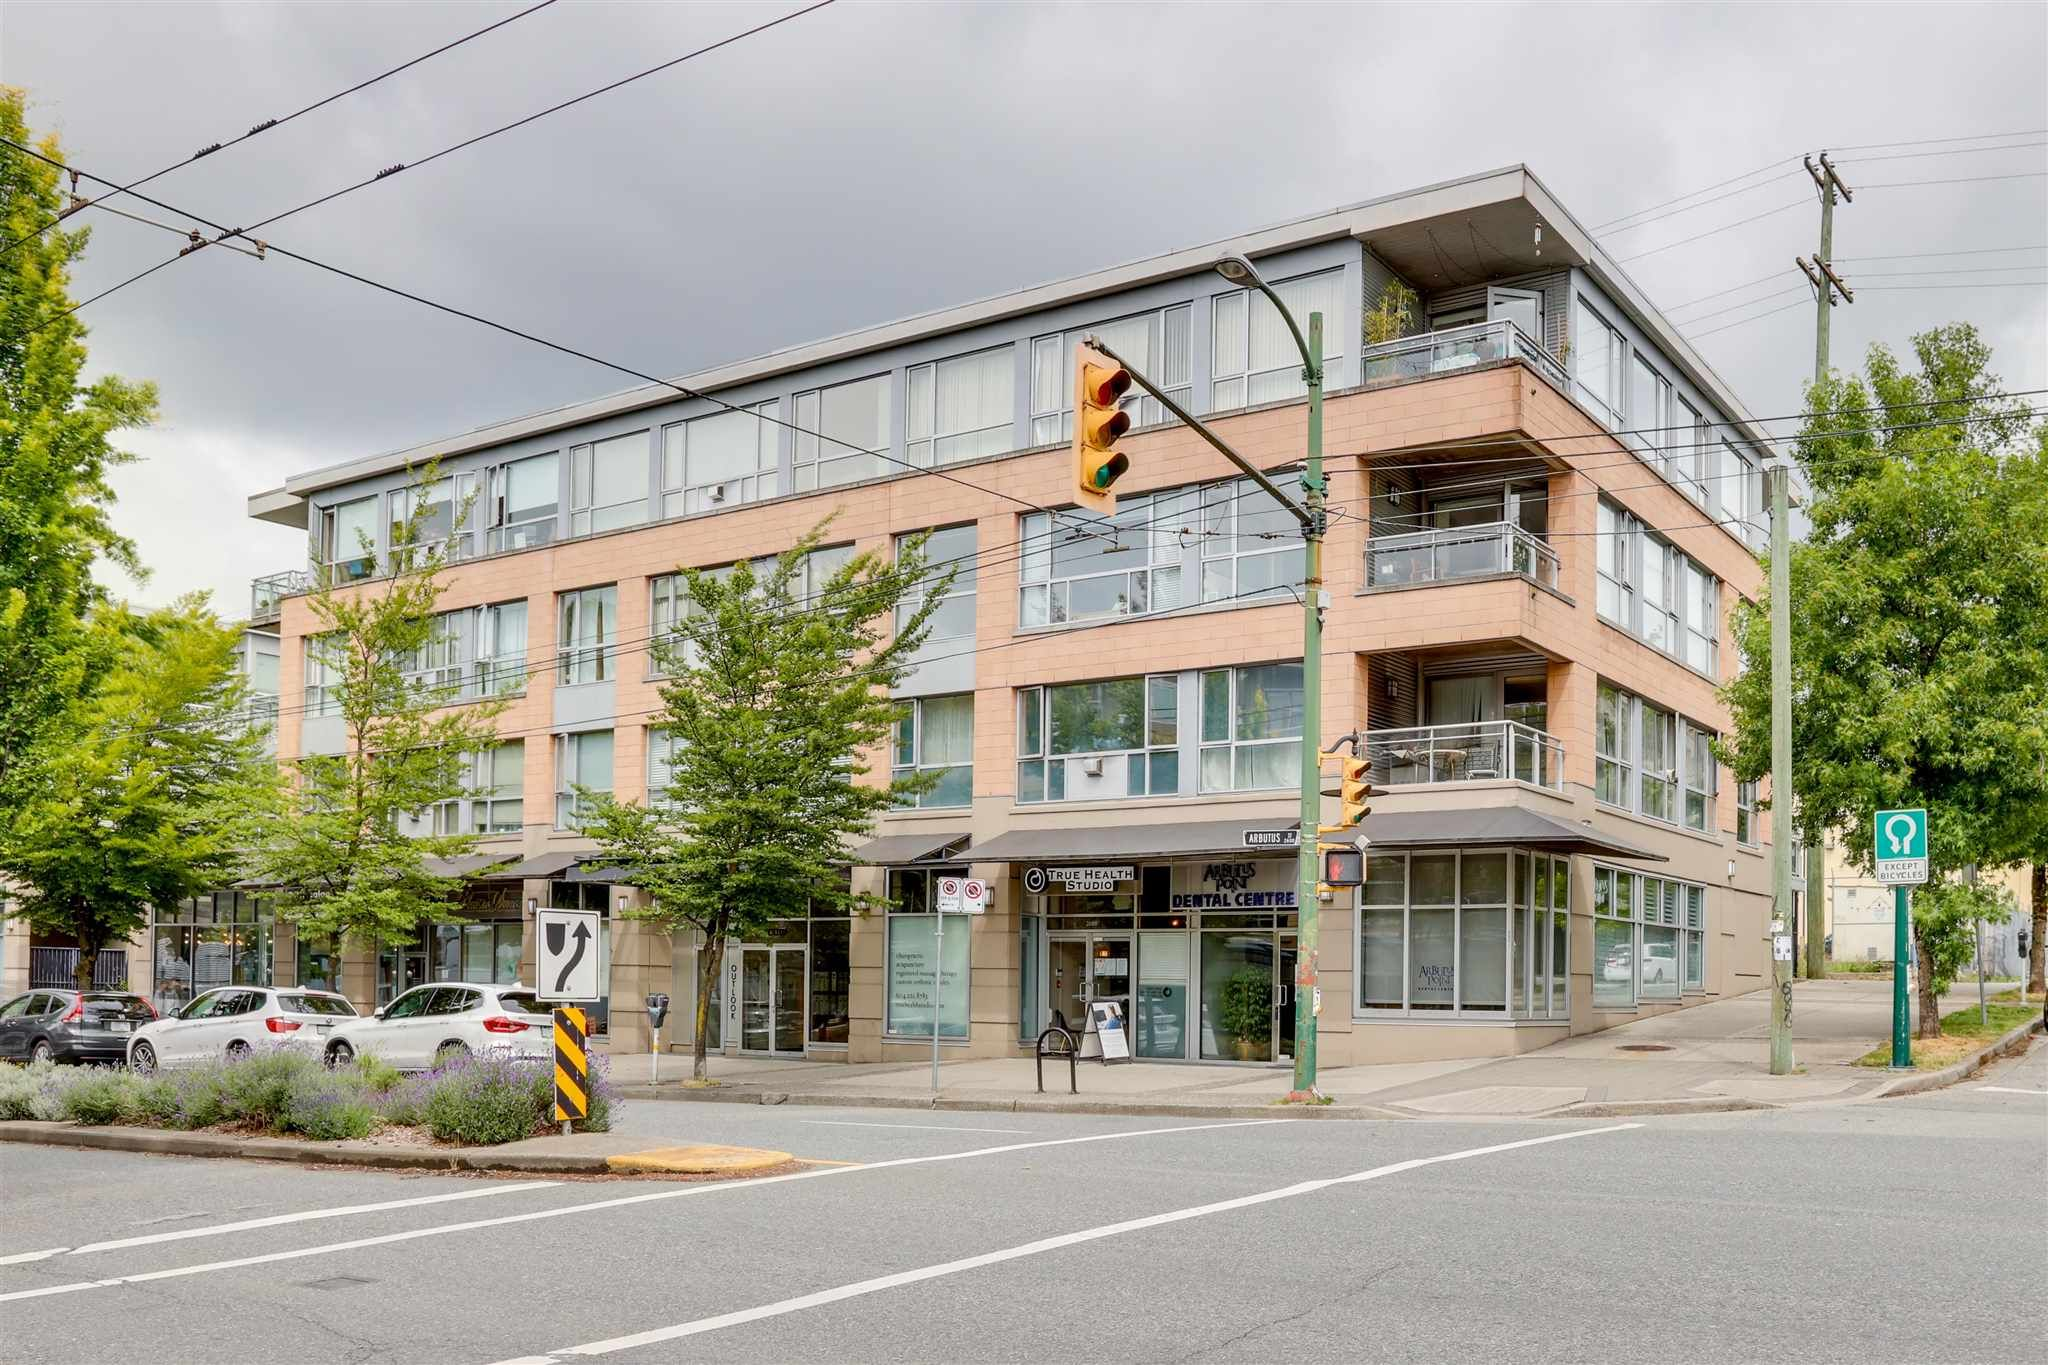 Main Photo: 204 2680 ARBUTUS Street in Vancouver: Kitsilano Condo for sale (Vancouver West)  : MLS®# R2594390